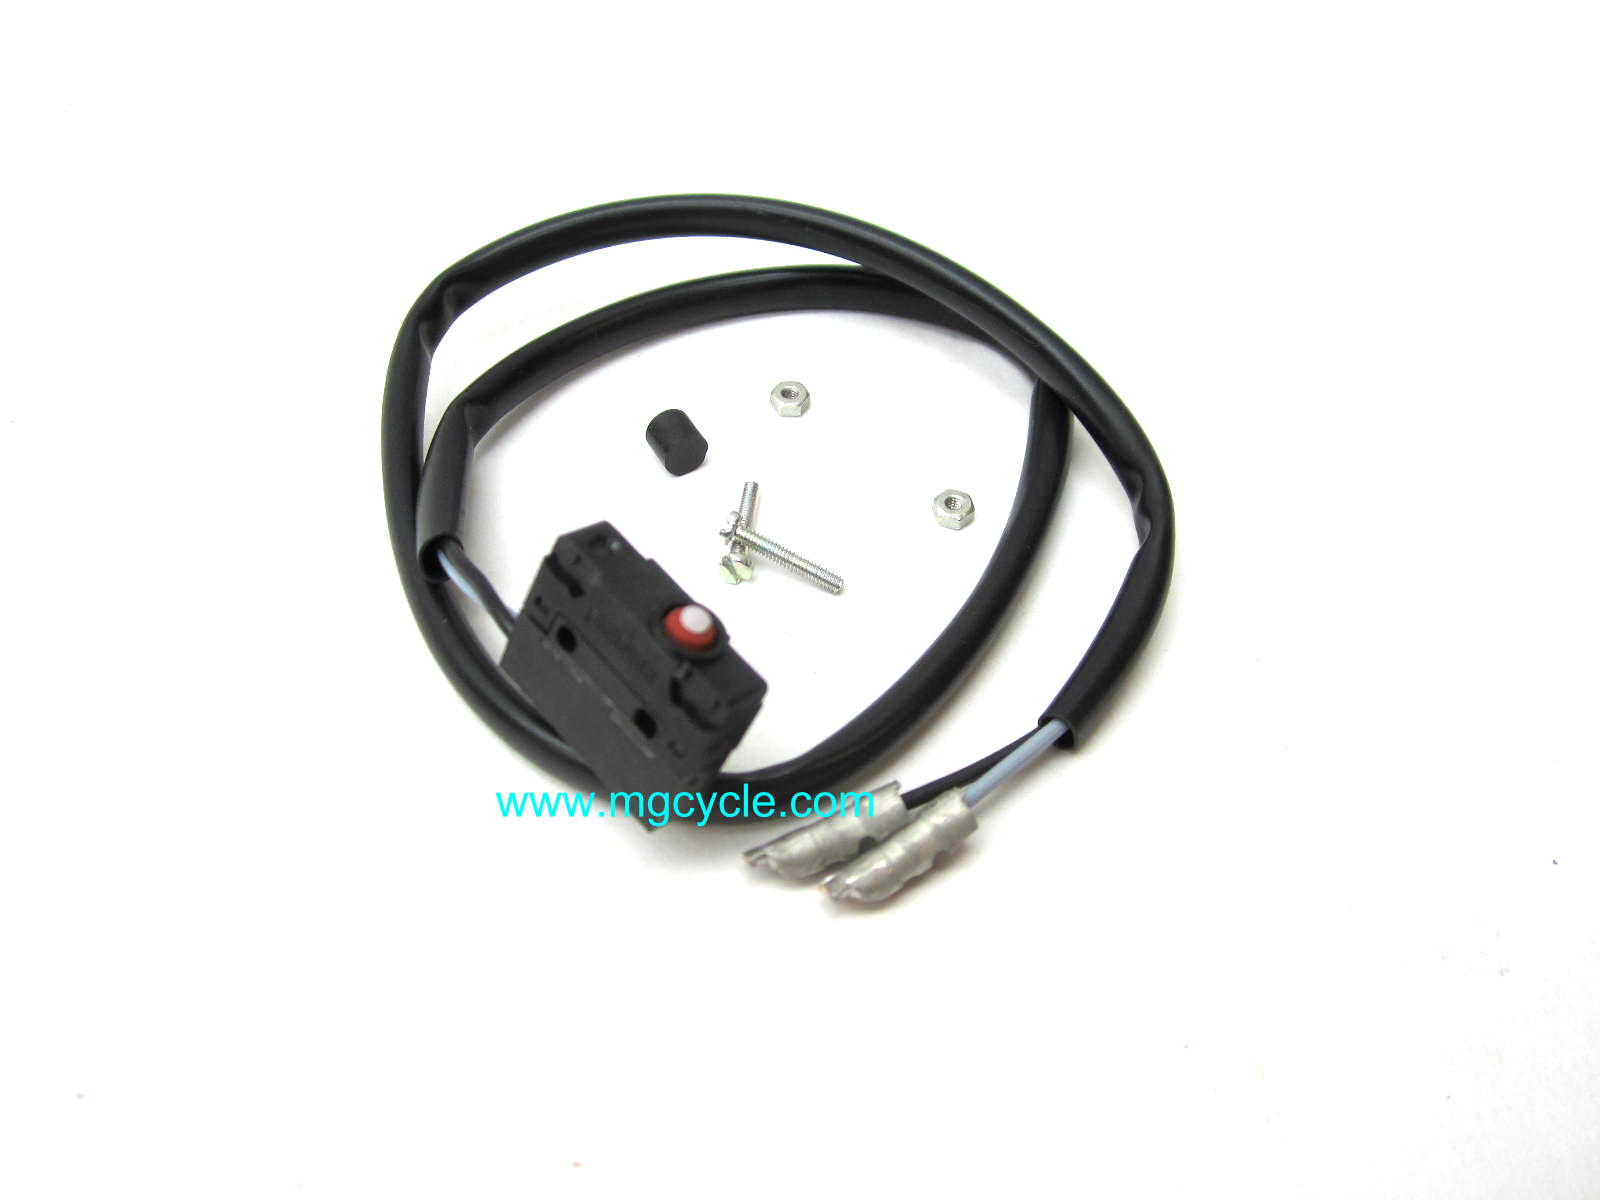 Microswitch for clutch and brake, various models, sub 27749815